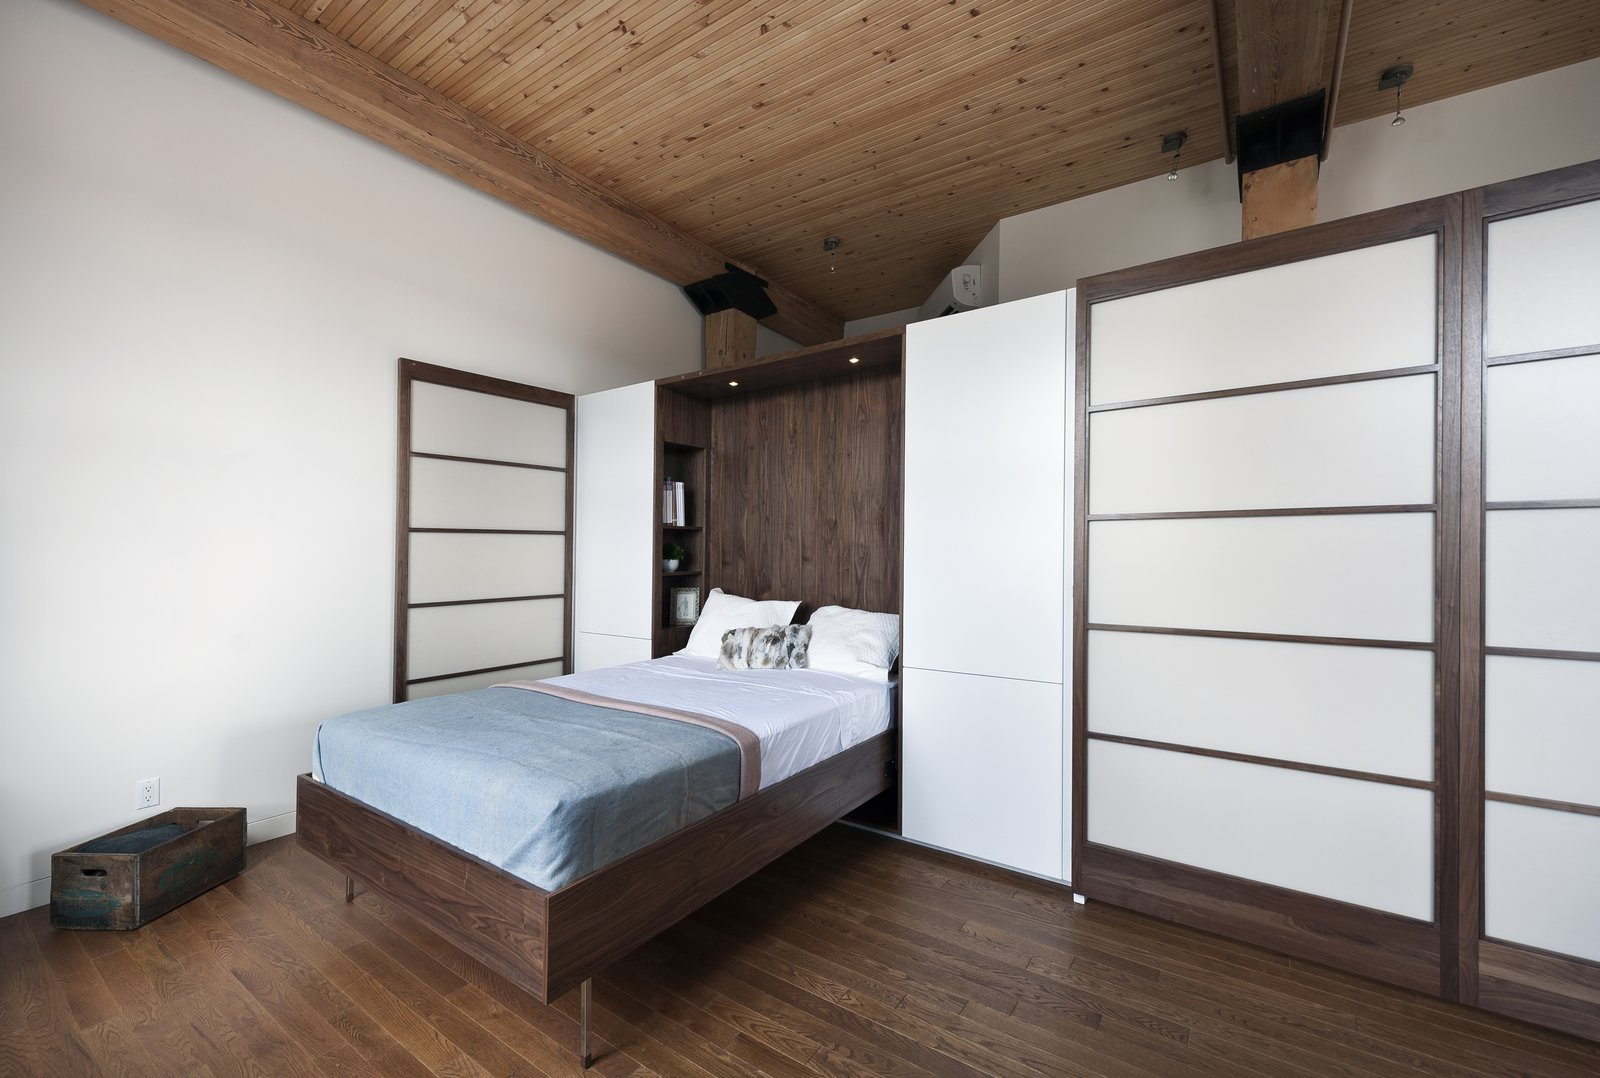 Gepetto built a Murphy bed that folds into a larger walnut storage unit. The wall, which also conceals a washer and dryer, does double duty as a partition between the bedroom and the loft's entrance.